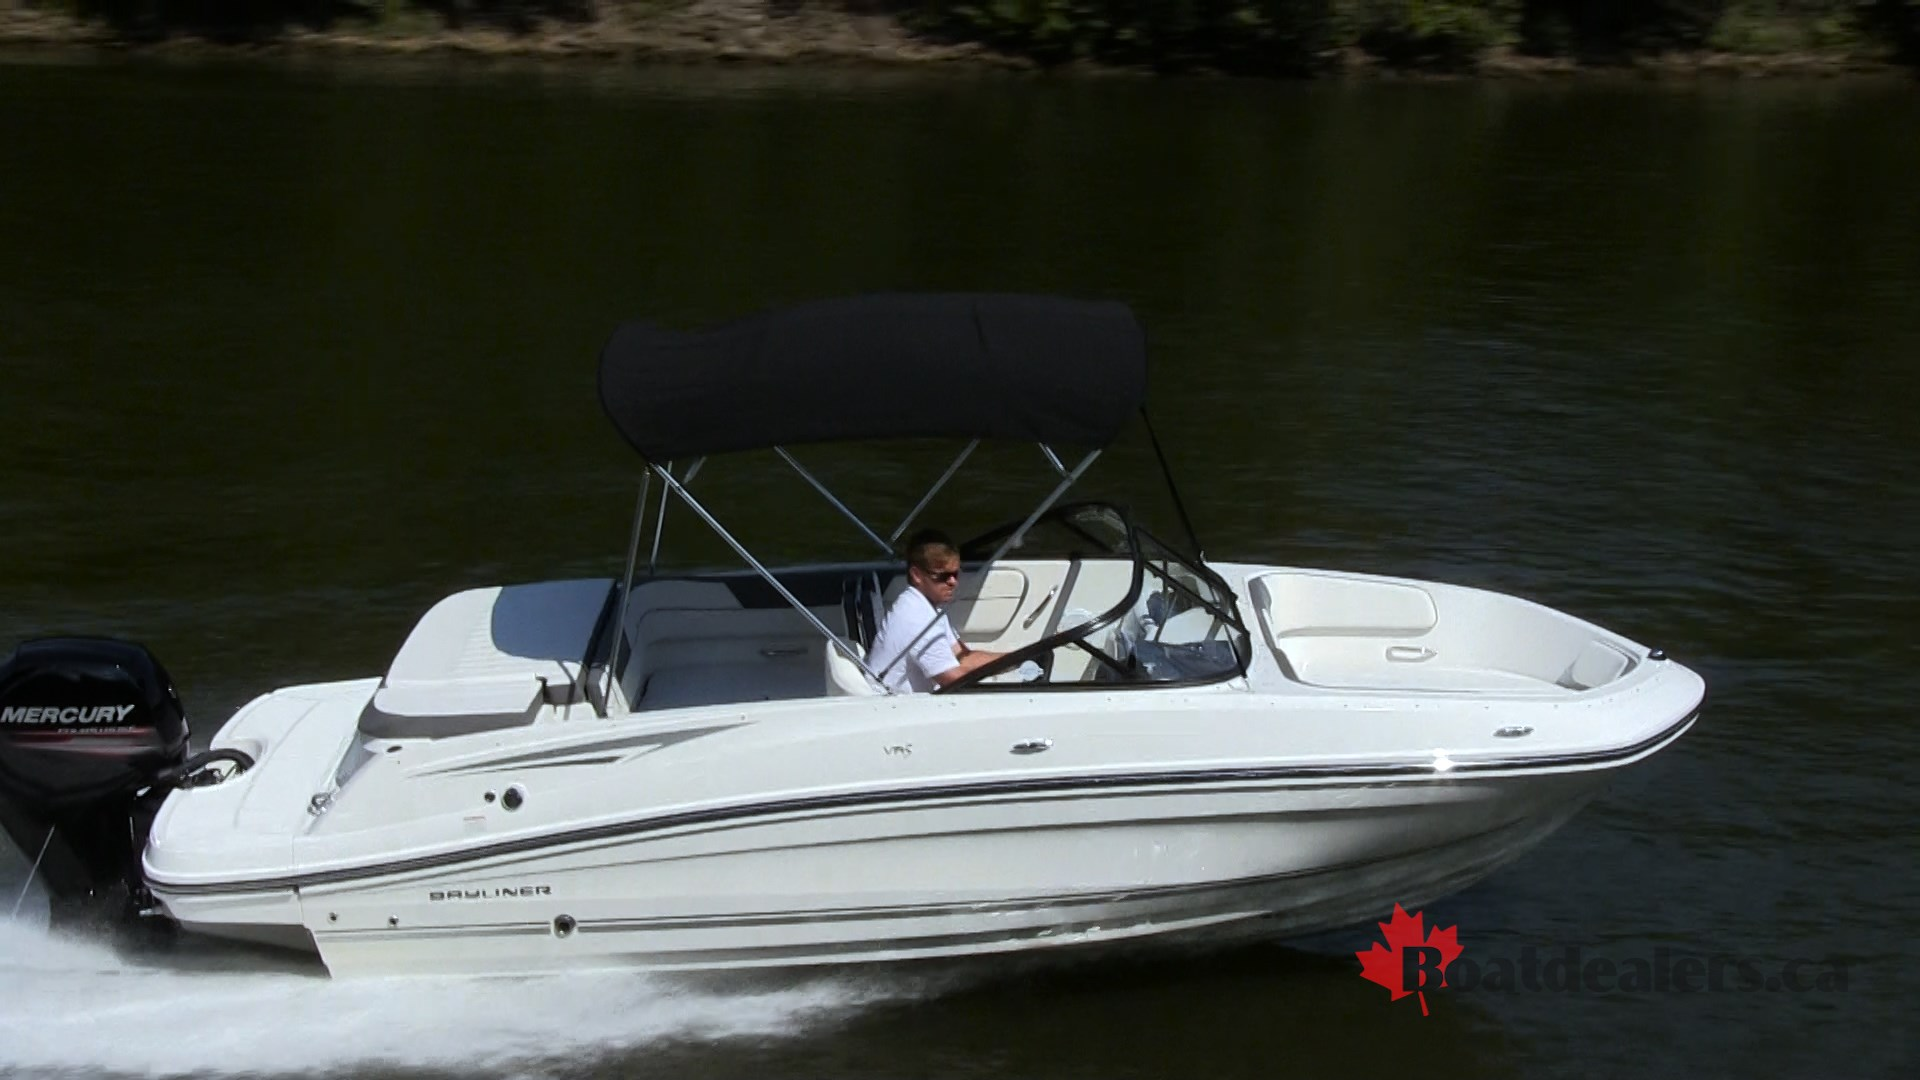 2017 Bayliner Vr5 Ob Bowrider Boat Review Bought First Few Questions Of Course Bass Boats Canoes